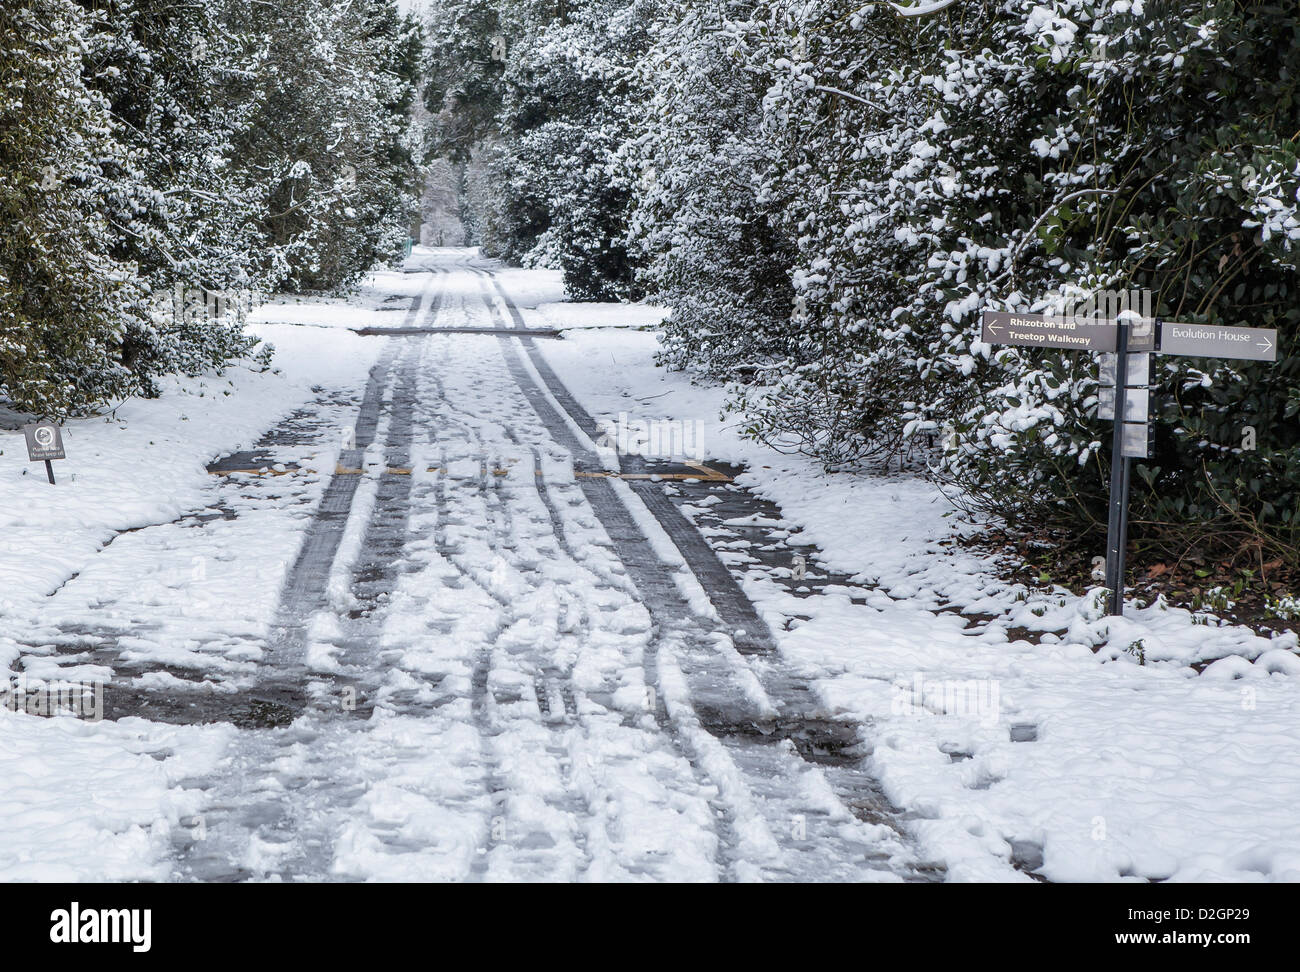 Tyre tracks and sign at a snow covered Kew Gardens, Greater London, UK - Stock Image